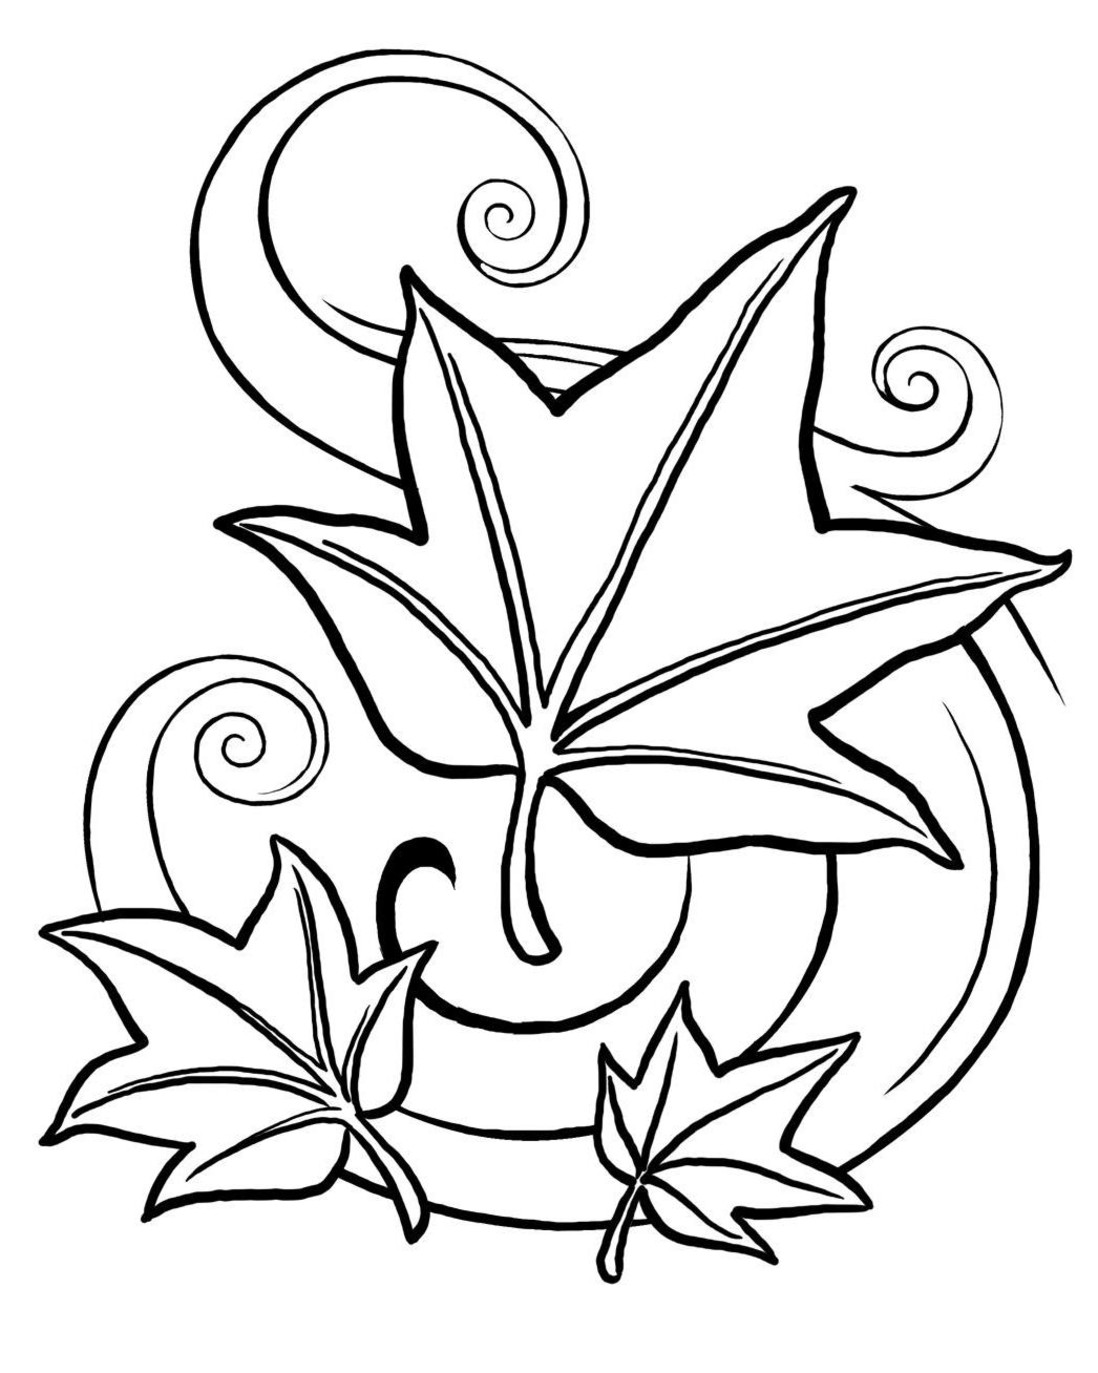 leaf coloring pages fall leaves coloring pages for kindergarten at coloring pages leaf